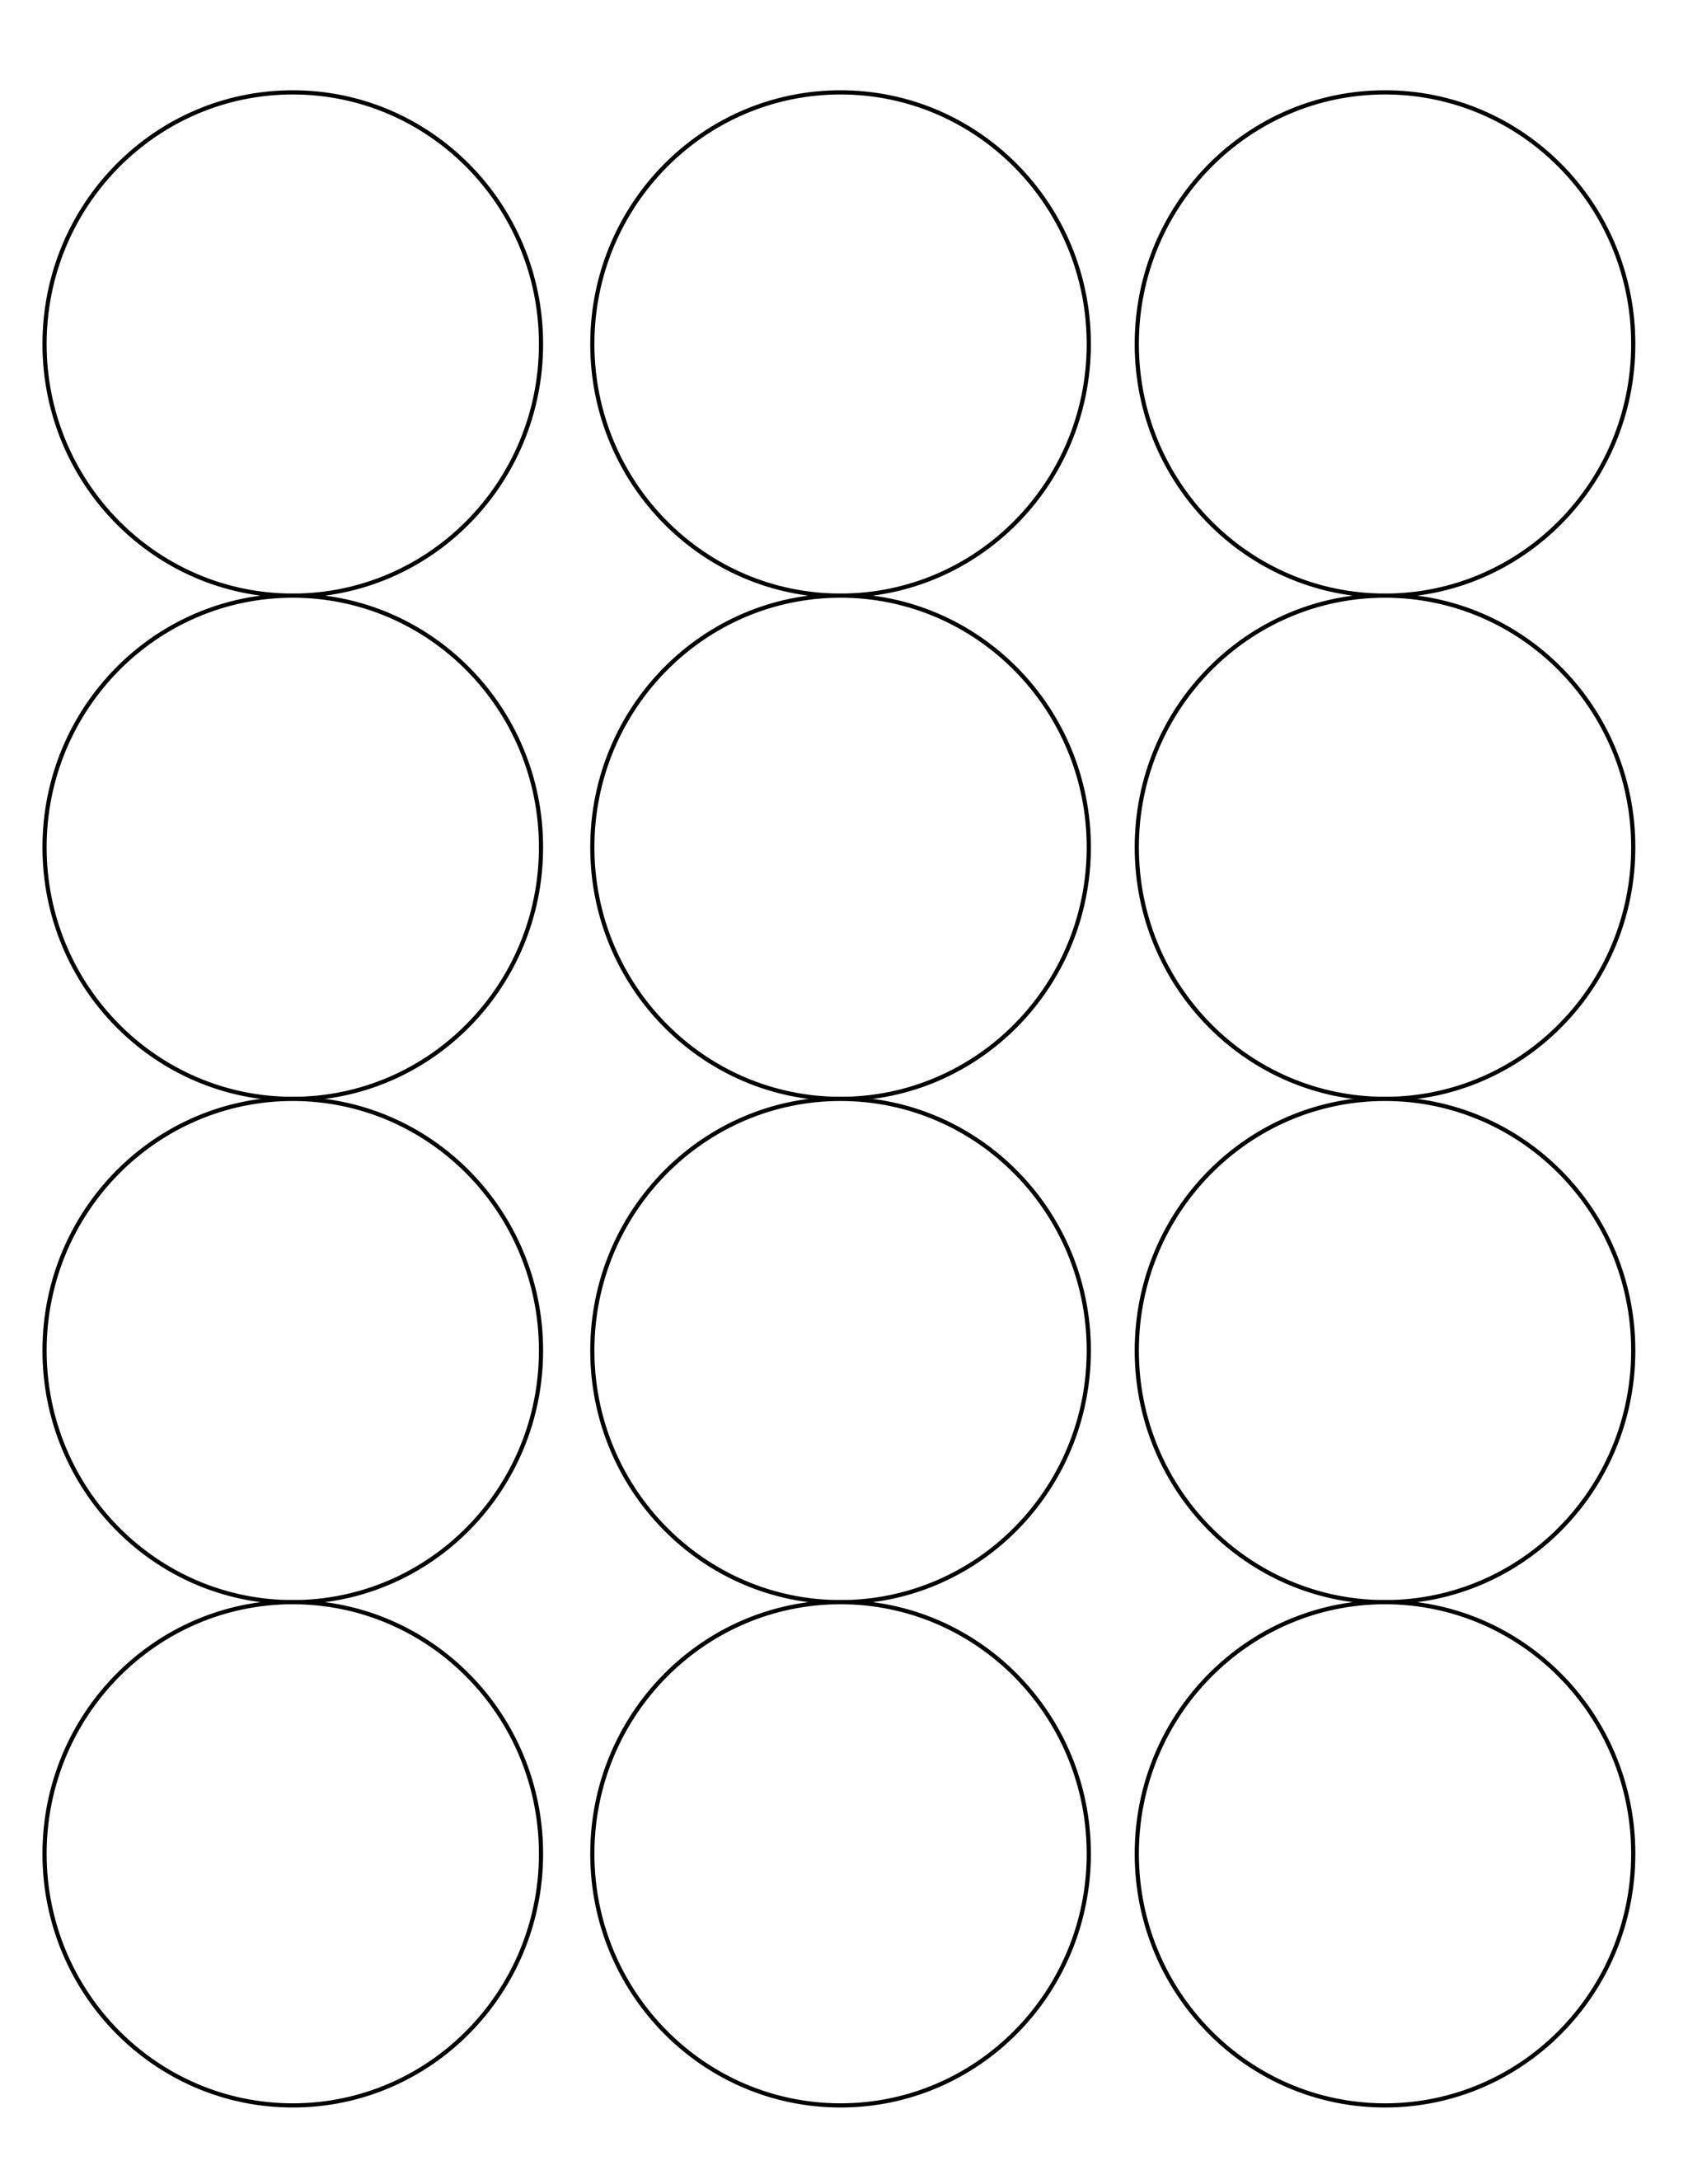 How To Make Pretty Labels In Microsoft Word Printable Label Templates Labels Printables Free Templates Labels Printables Free